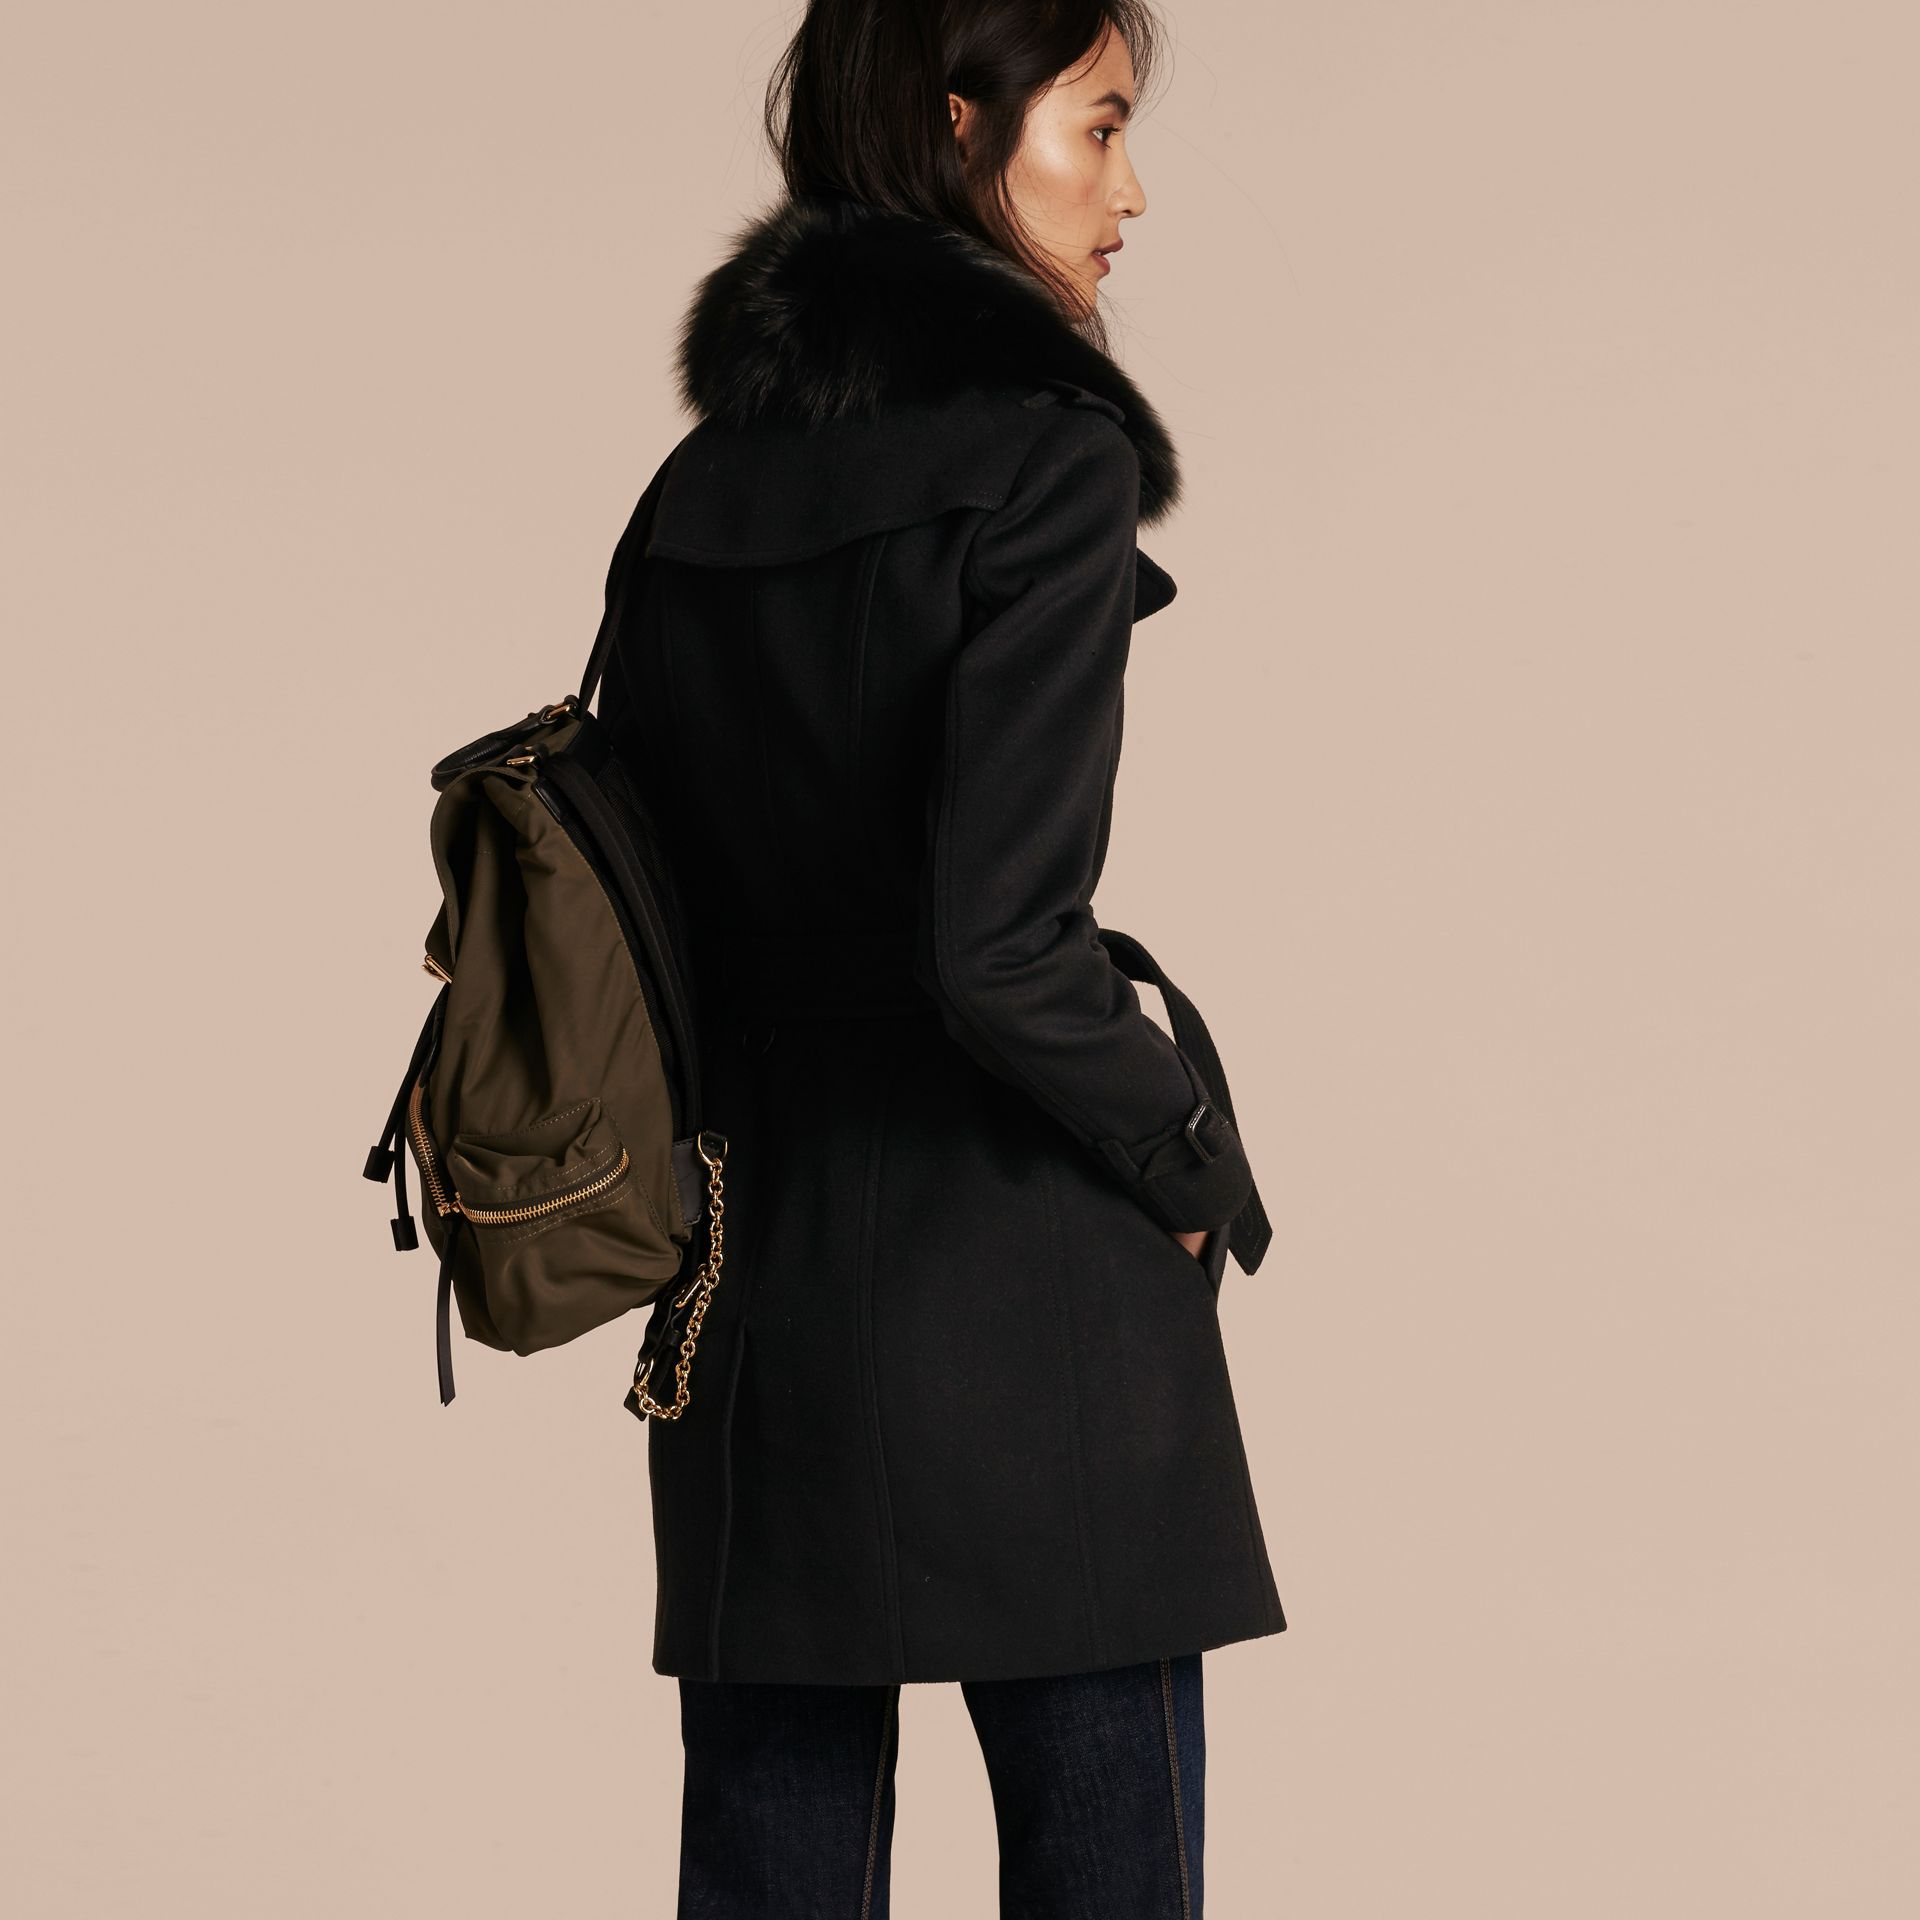 Wool Cashmere Trench Coat with Fur Collar in Black - Women | Burberry Canada - gallery image 3